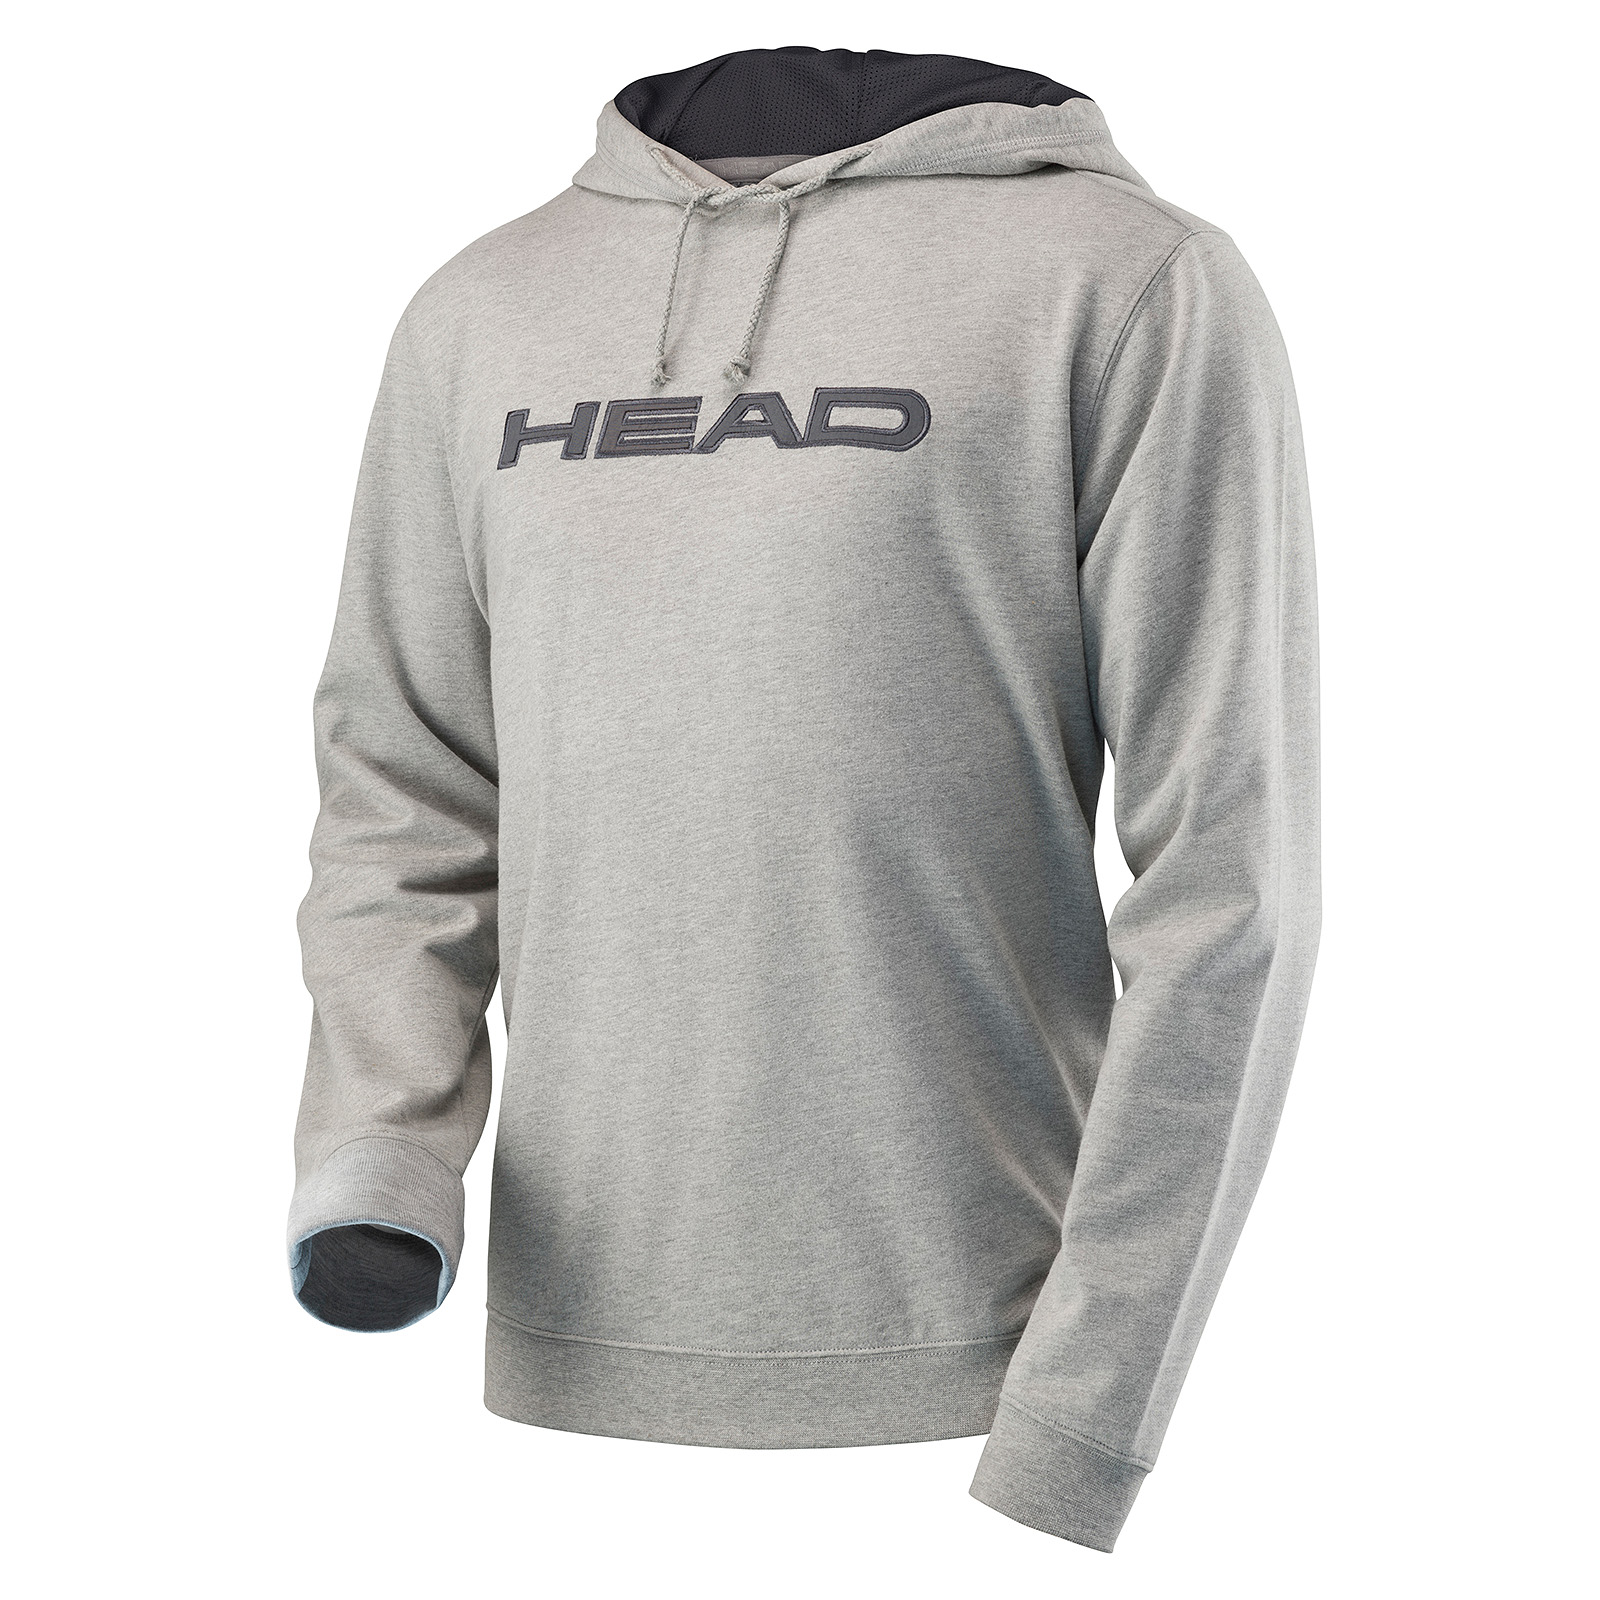 HEAD Hoody - Transition M Byron Grey L